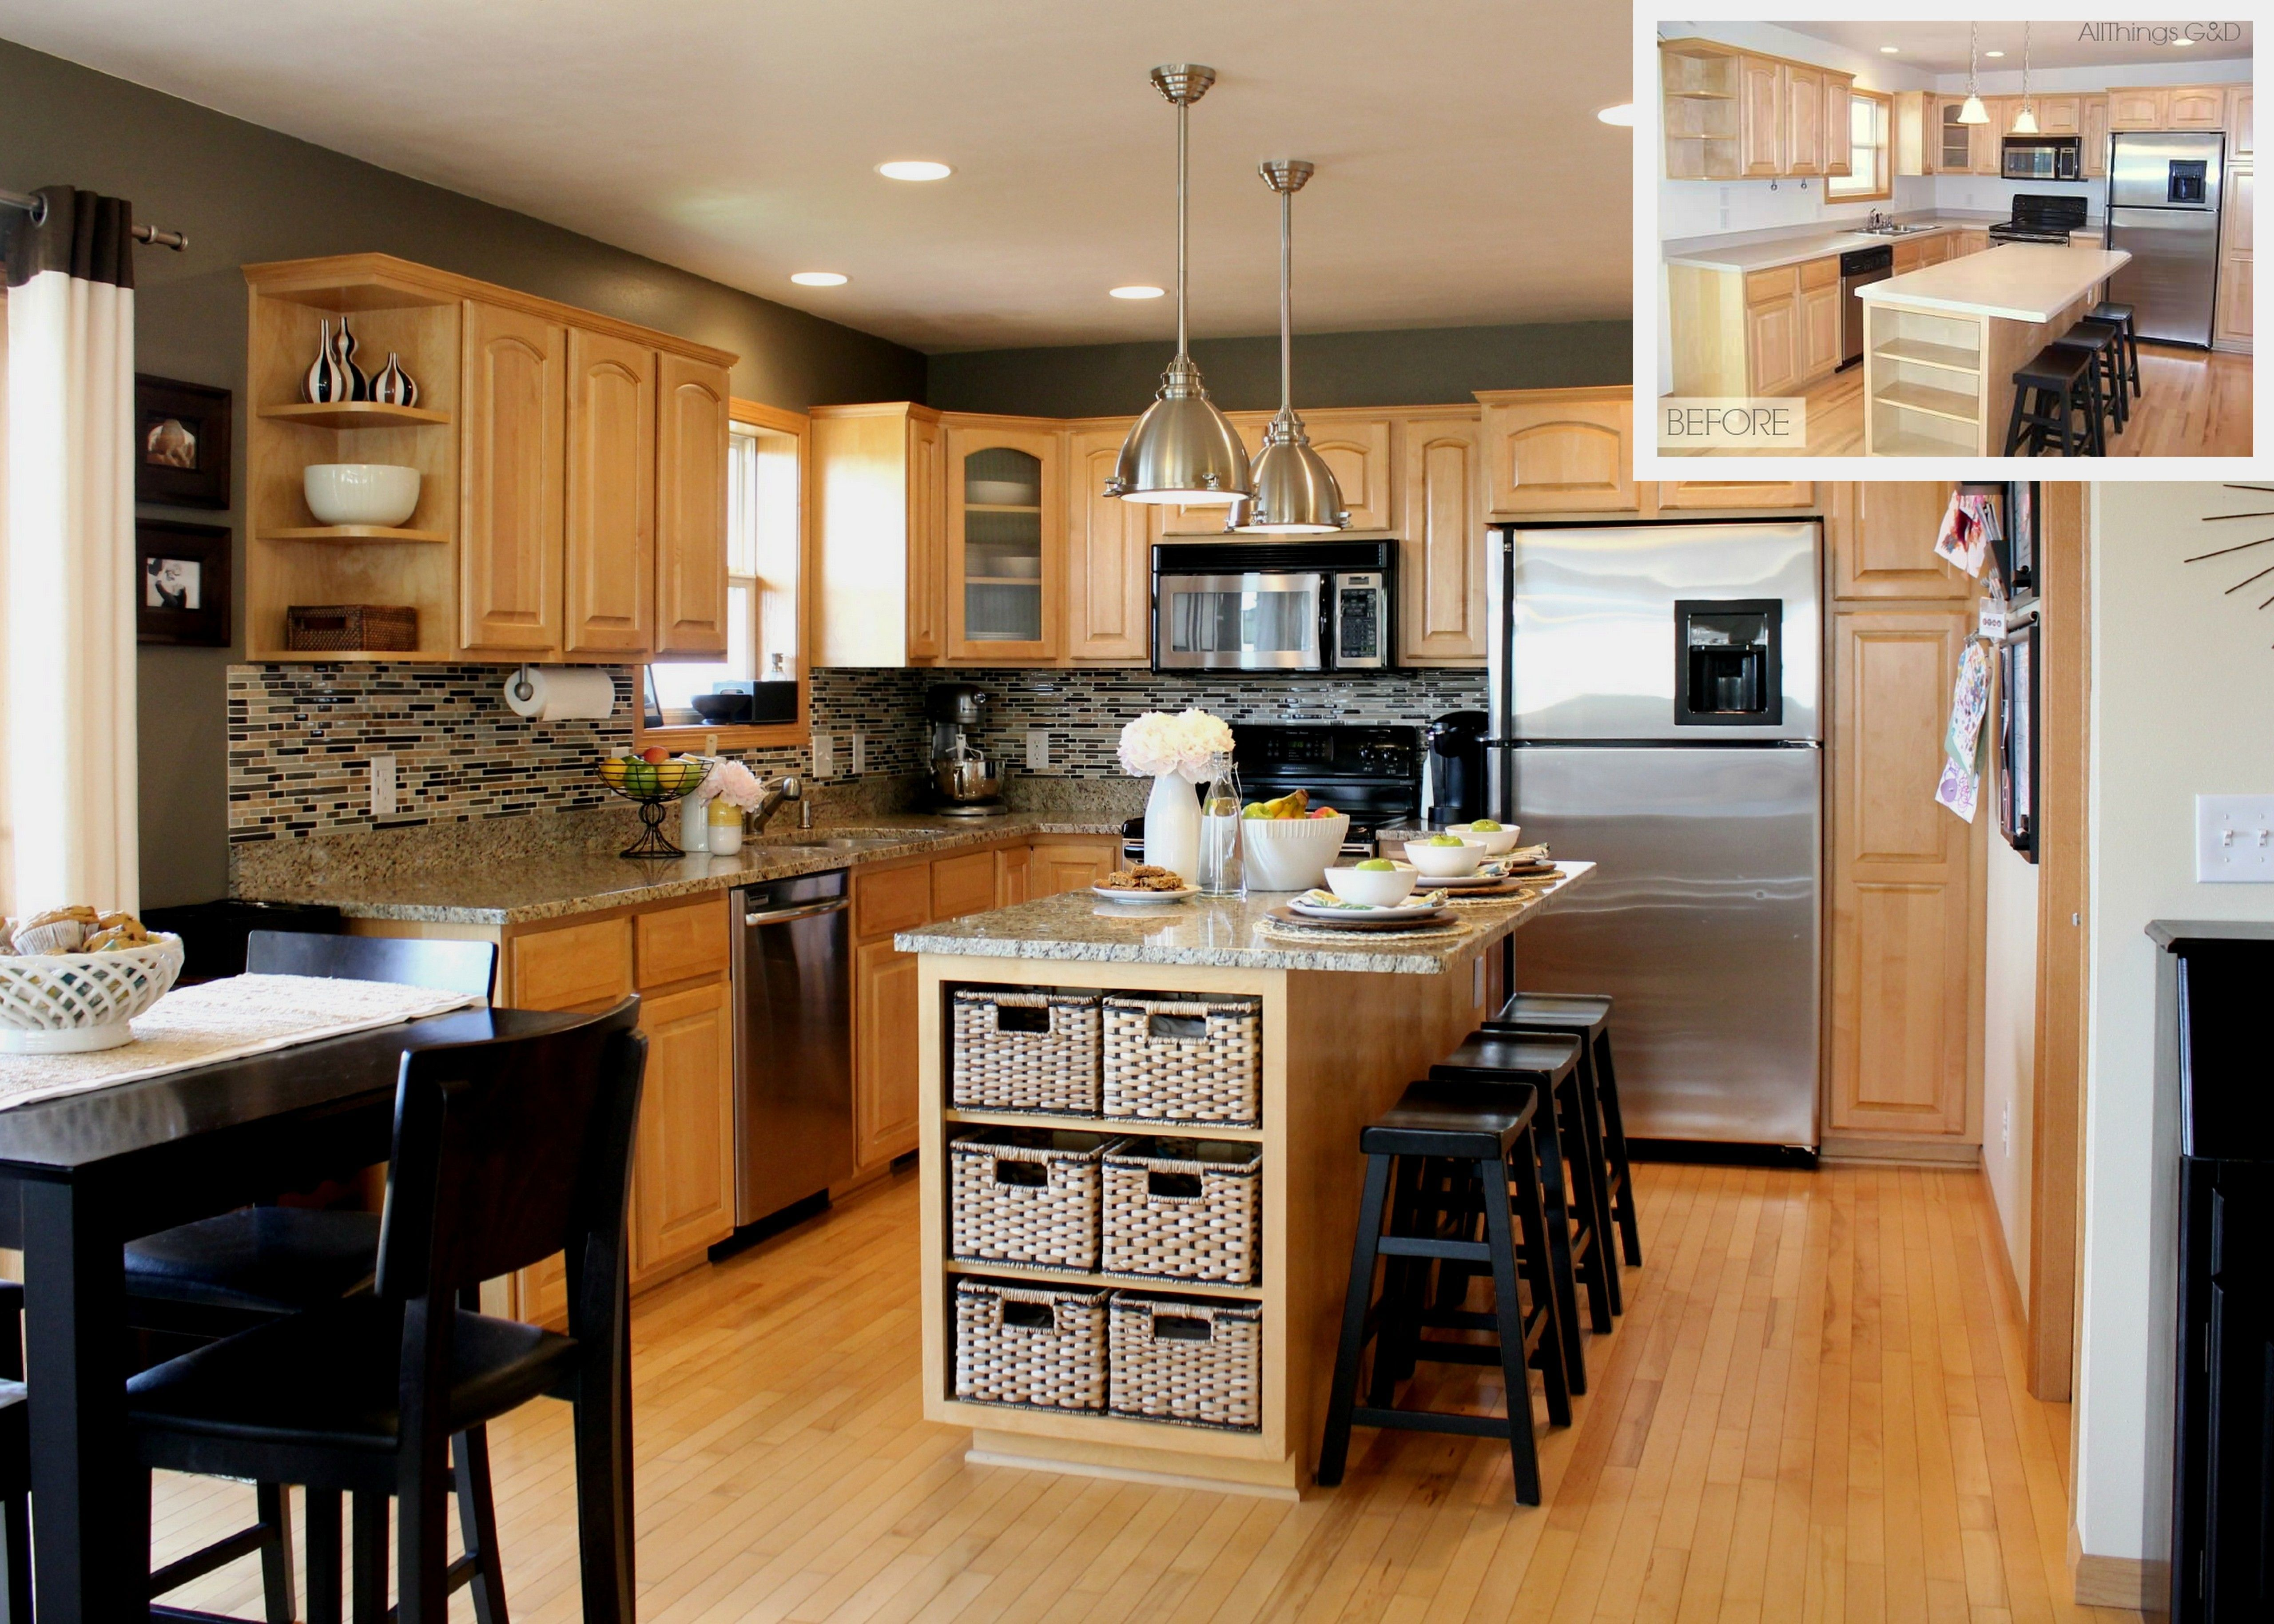 Kitchen Colors That Go With Light Wood Cabinets Maple Kitchen Cabinets Grey Kitchen Walls Kitchen Wall Colors